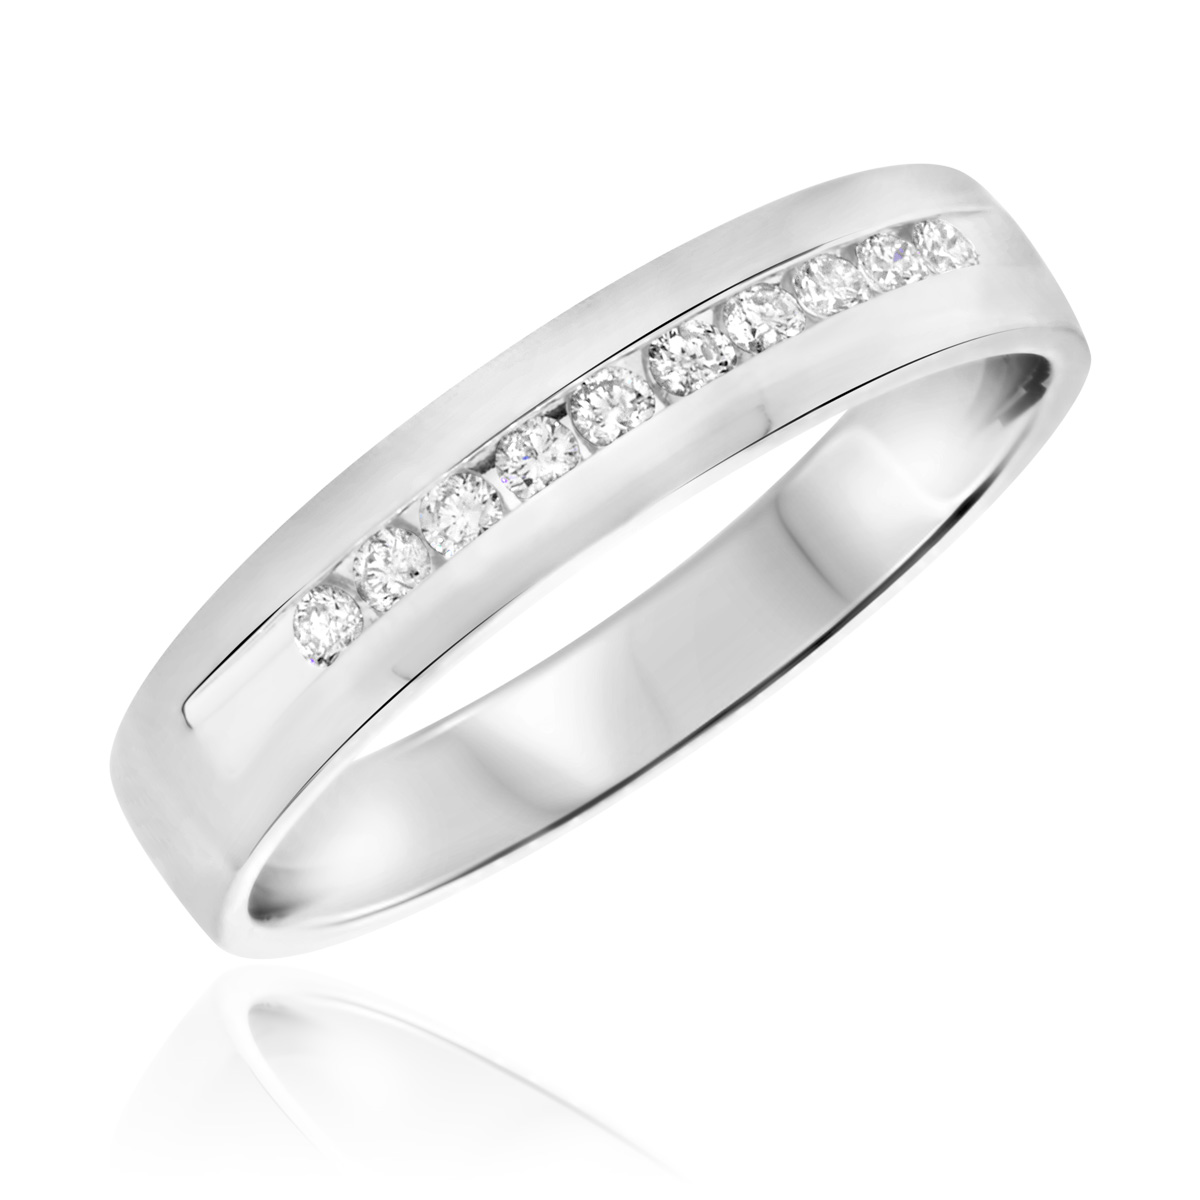 1/4 CT. T.W. Round Cut Diamond Men's Wedding Band 10K White Gold- Size 8